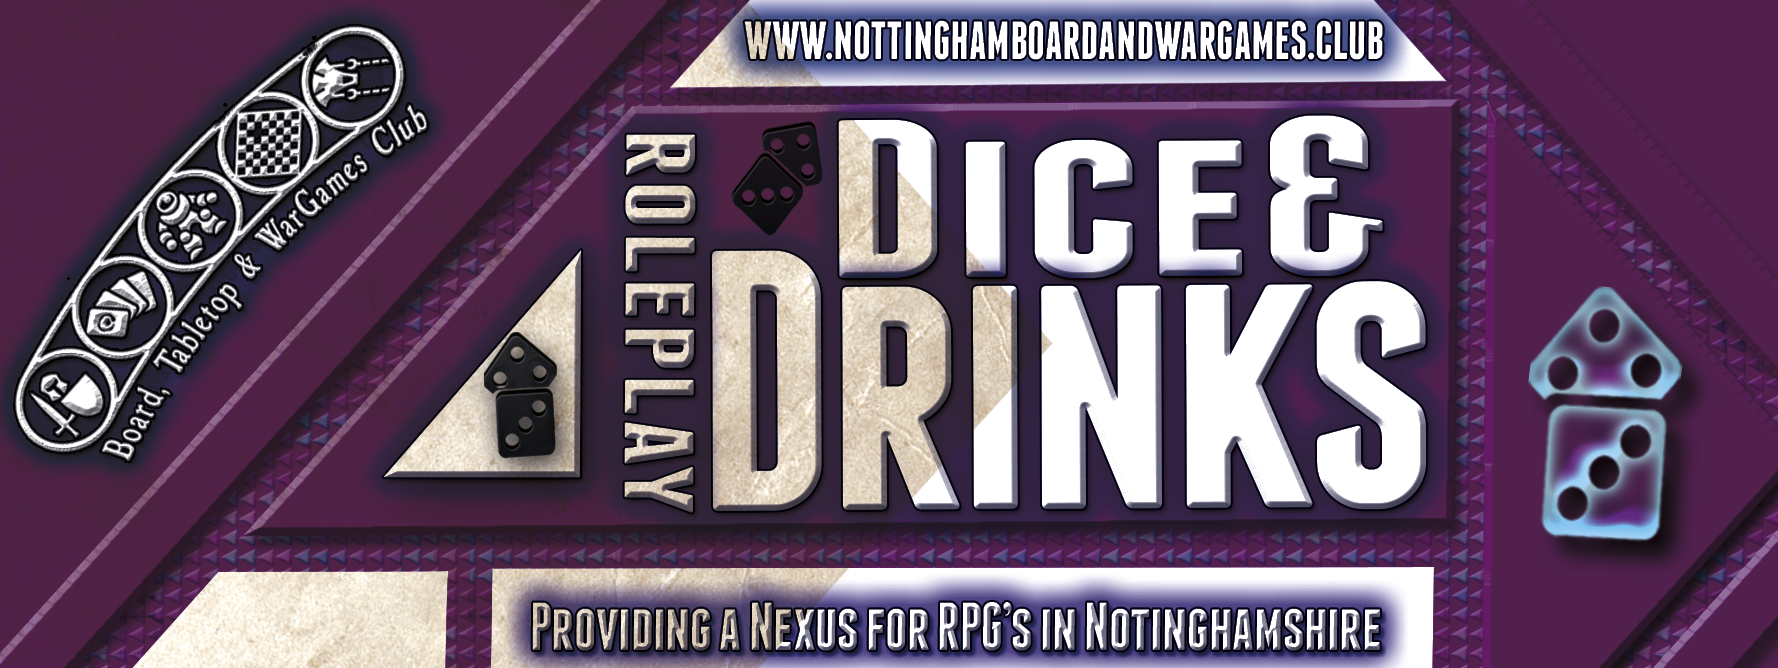 Drinks and dice banner